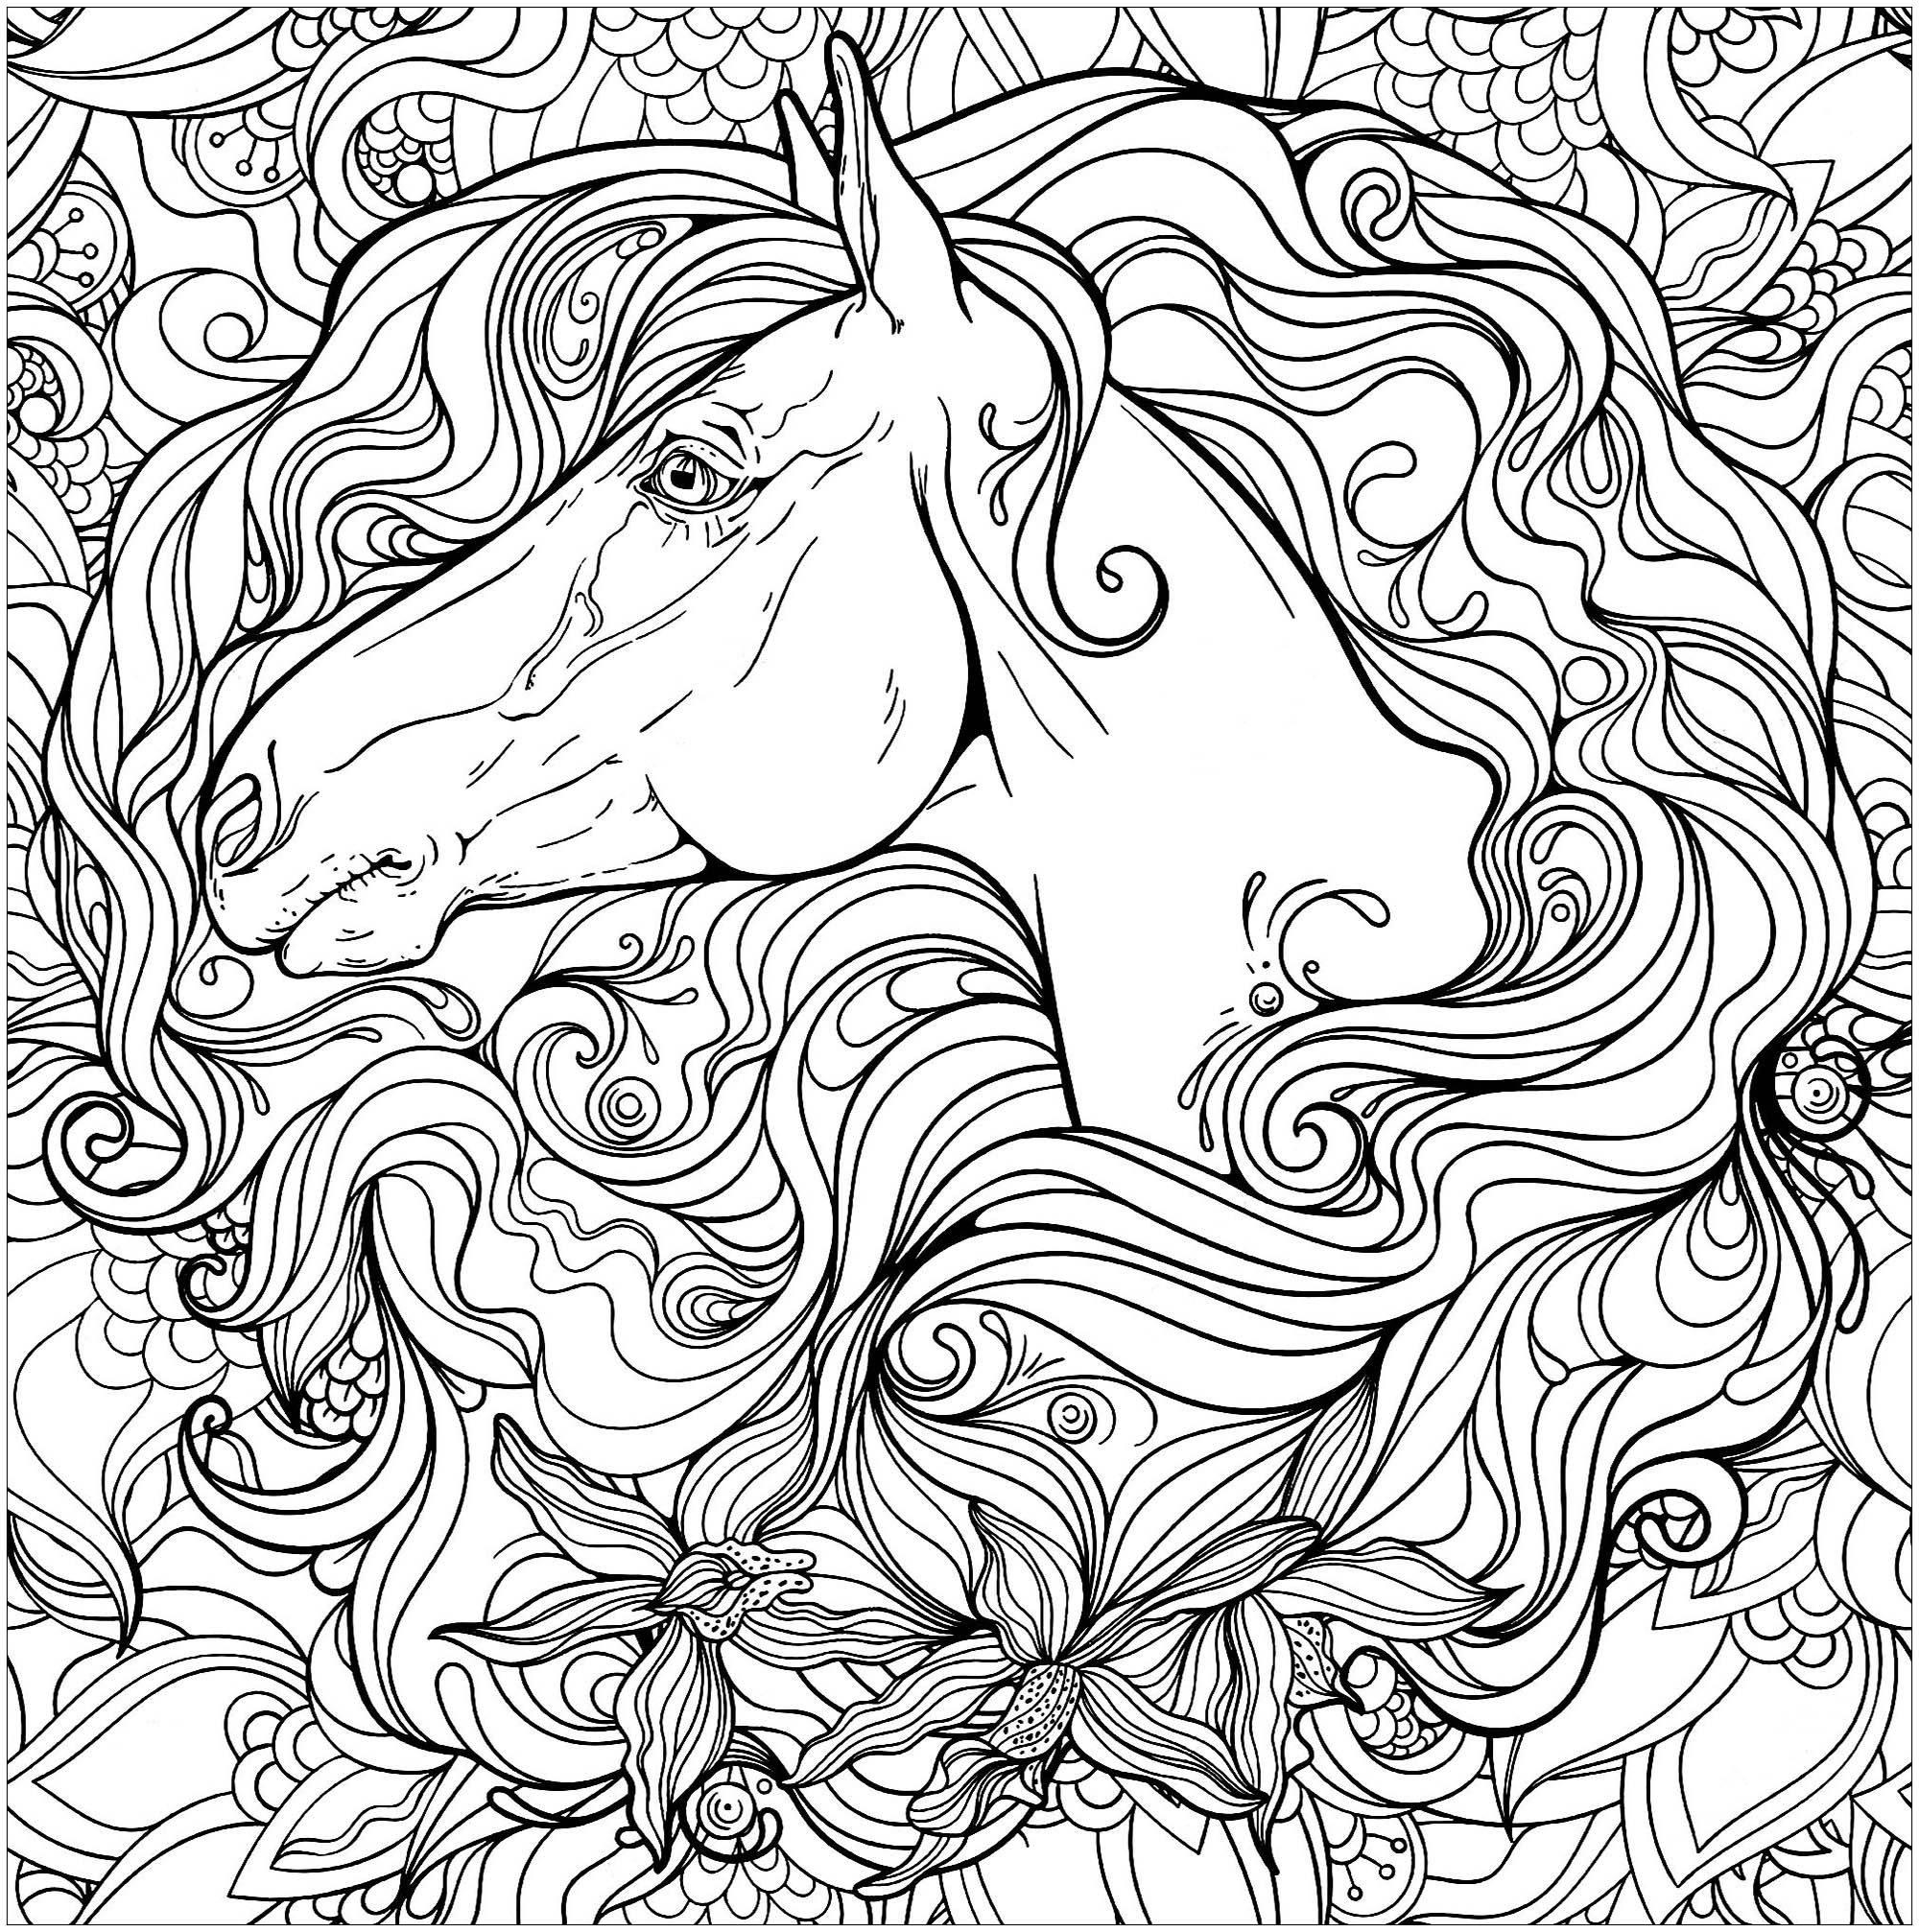 Horse coloring page to print and color : horse head and beautiful mane (2)